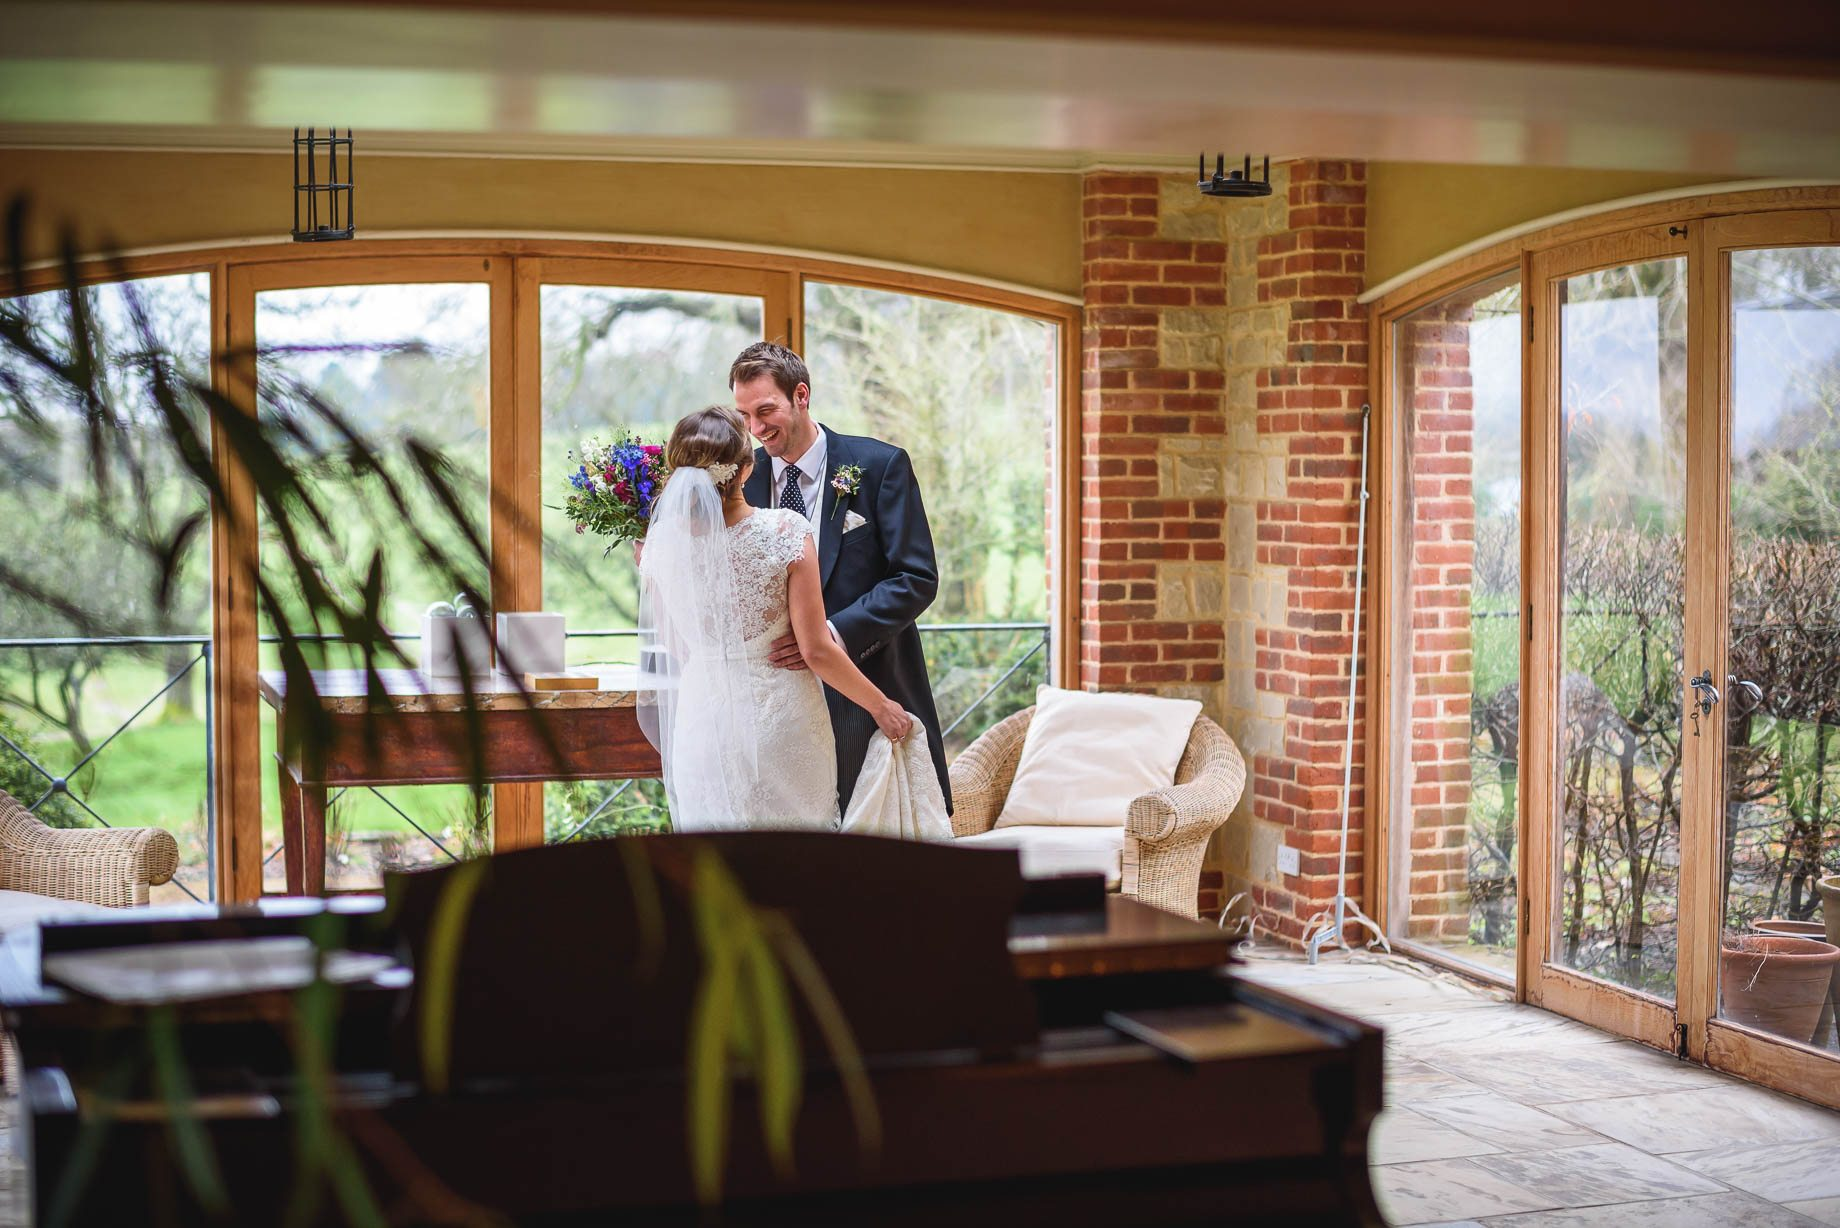 Bury Court Barn wedding photography - Ashley and Henry by Guy Collier Photography (67 of 188)